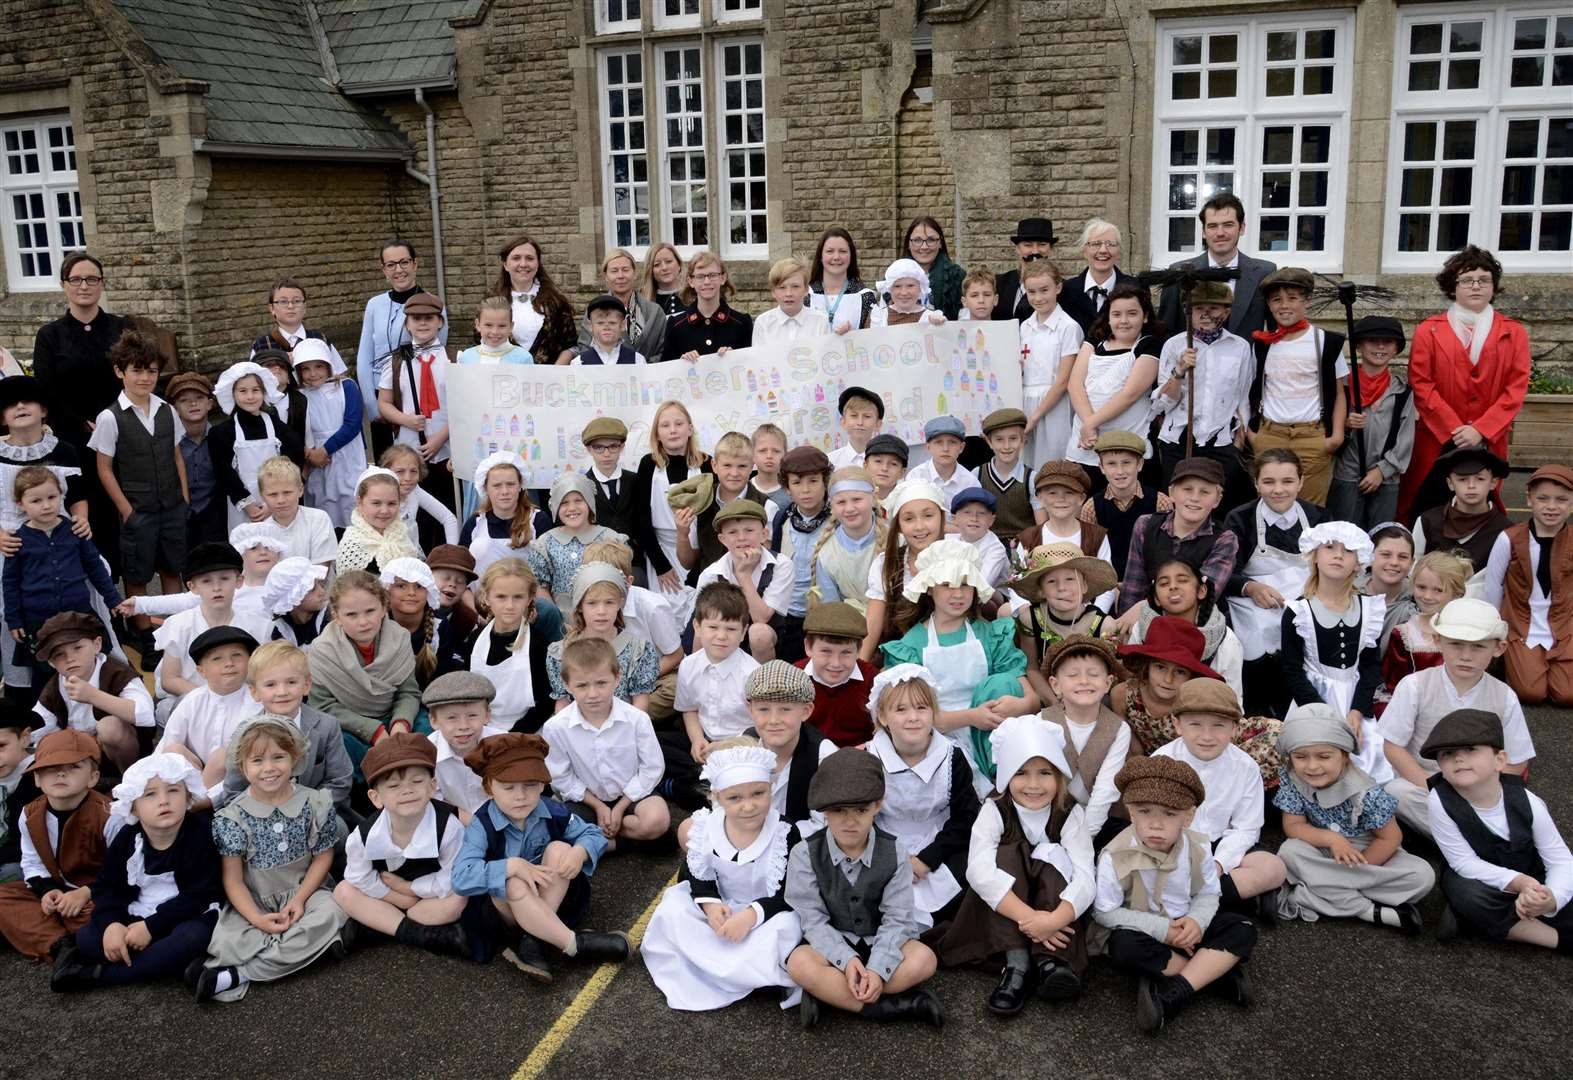 Buckminster pupils travel back in time to mark 120th anniversary